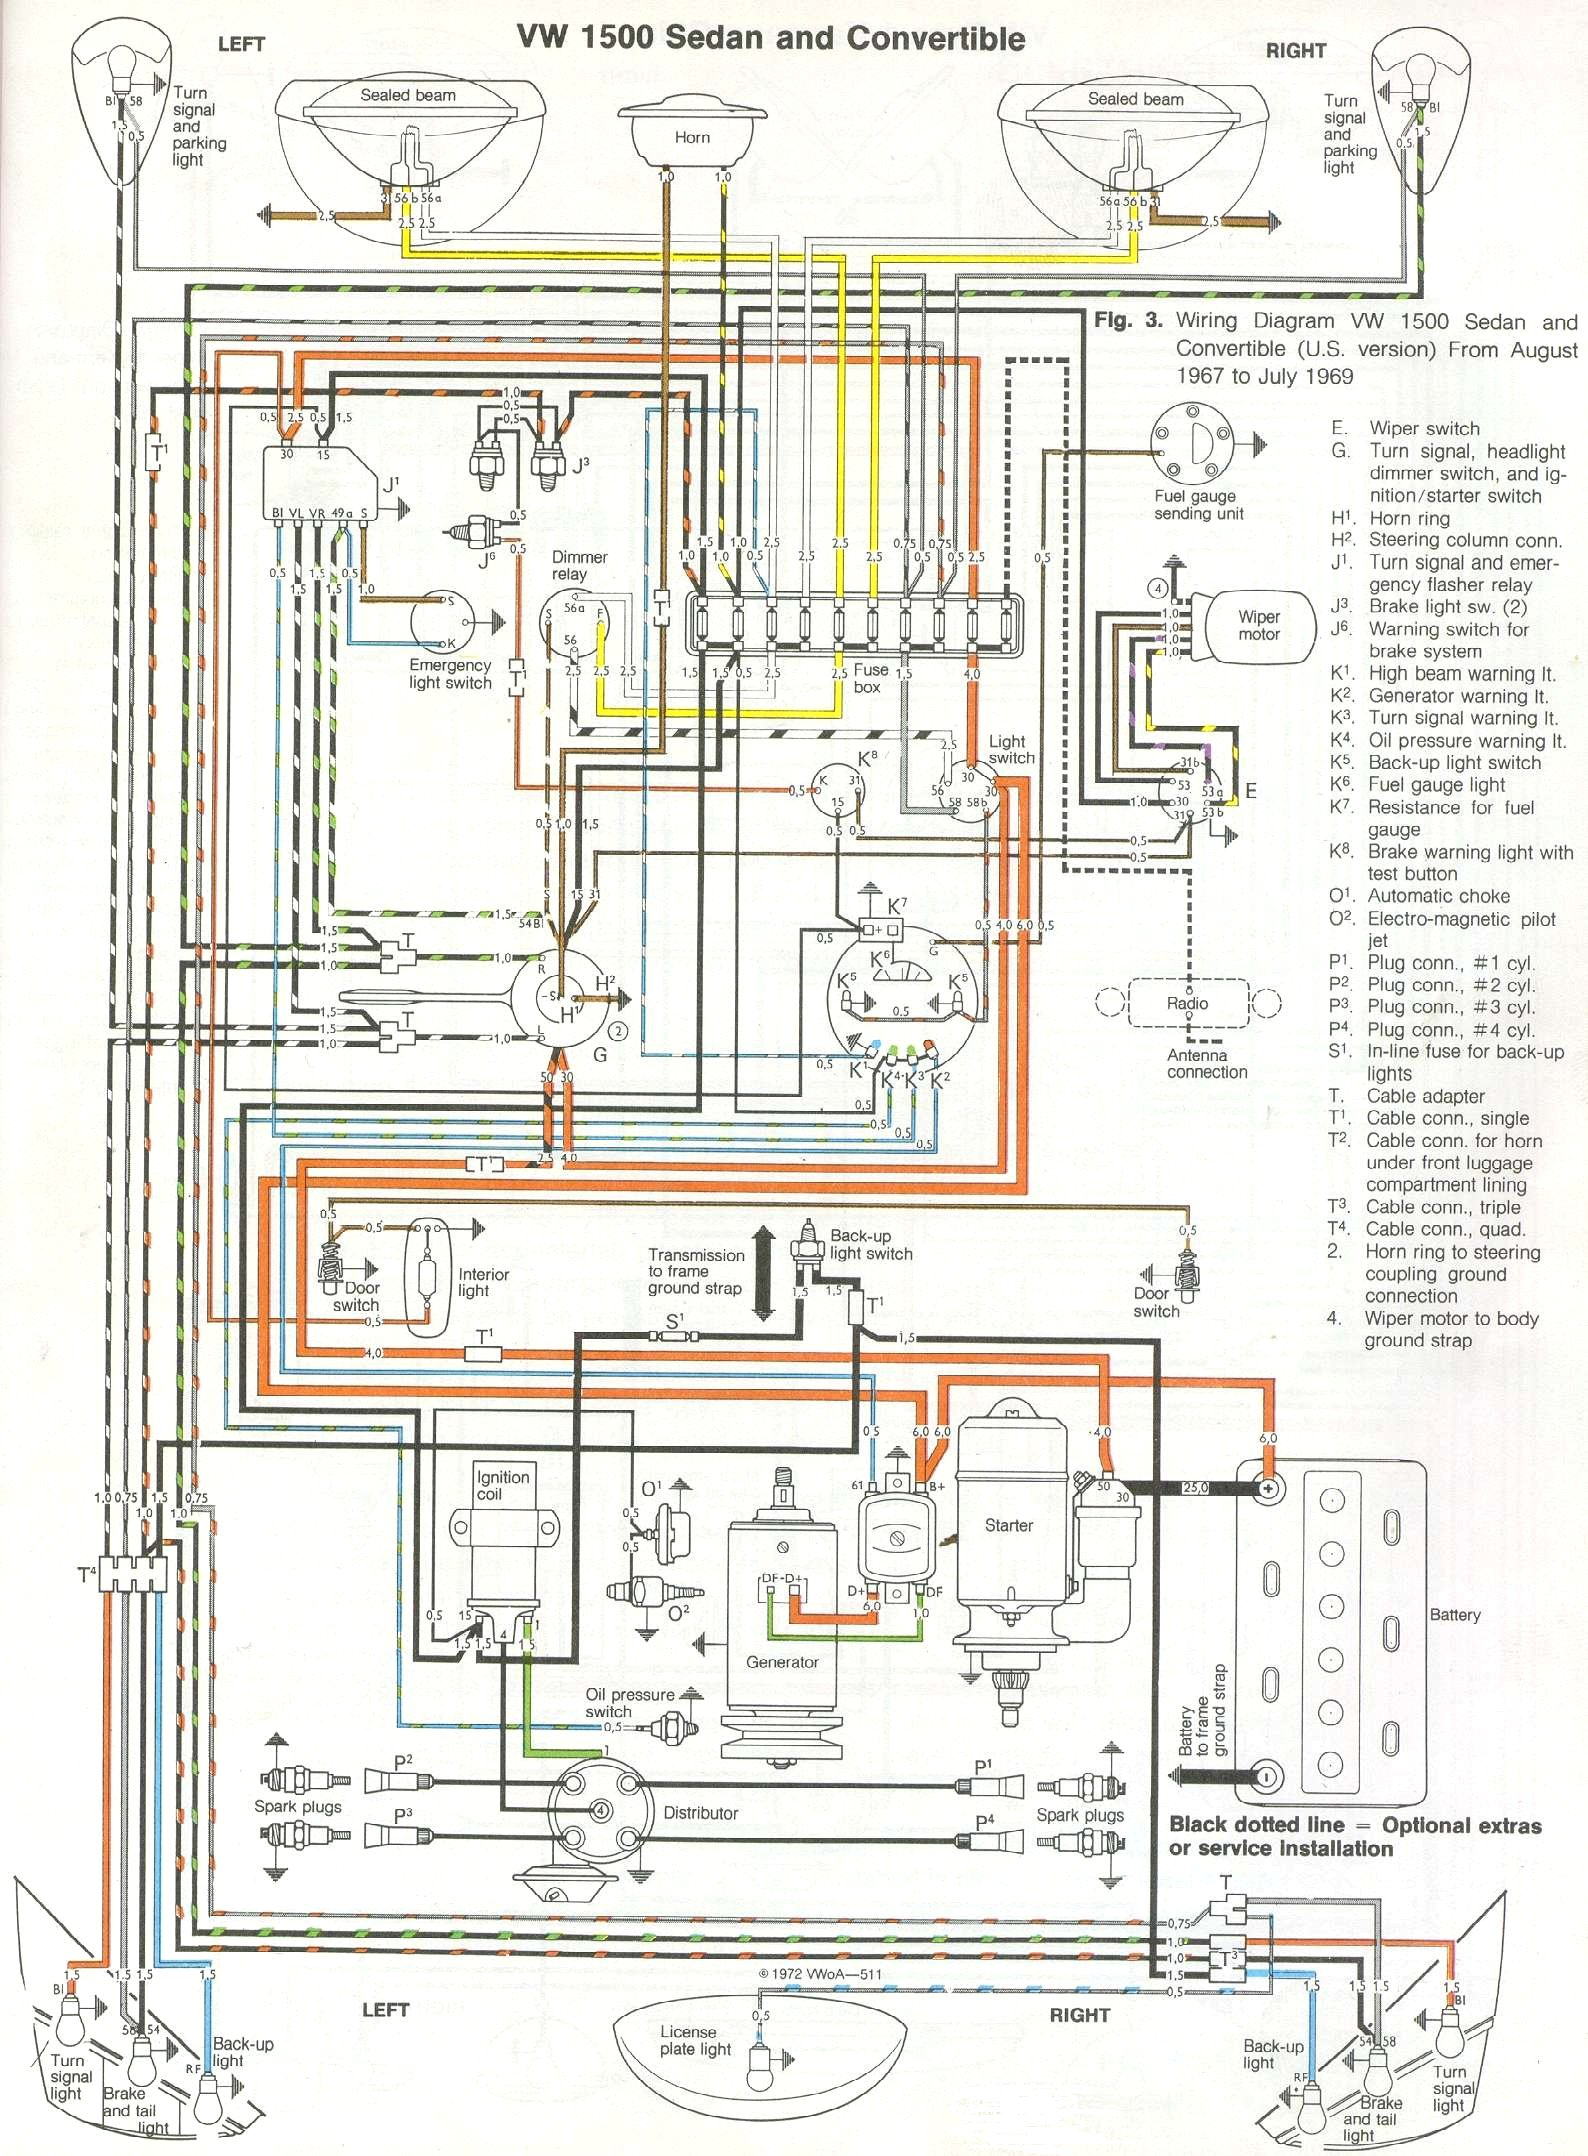 73 vw beetle wiring diagram 73 wiring diagrams online thesamba com type 1 wiring diagrams description vw beetle wiring diagram